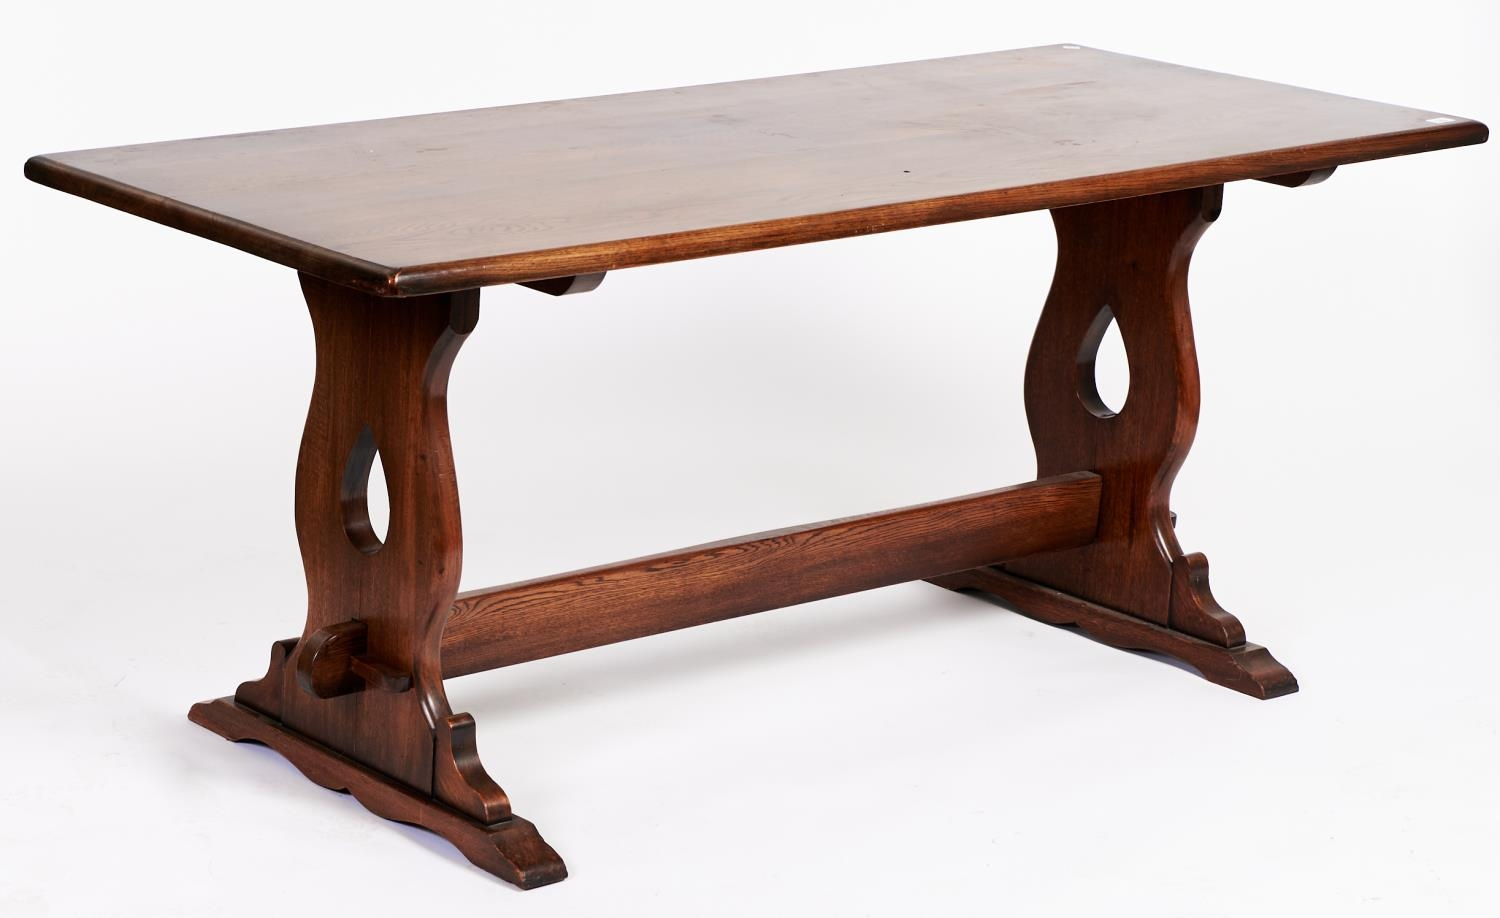 An antique style oak refectory table, 76cm h; 182 x 74cm Numerous scuffs and scratches to corners